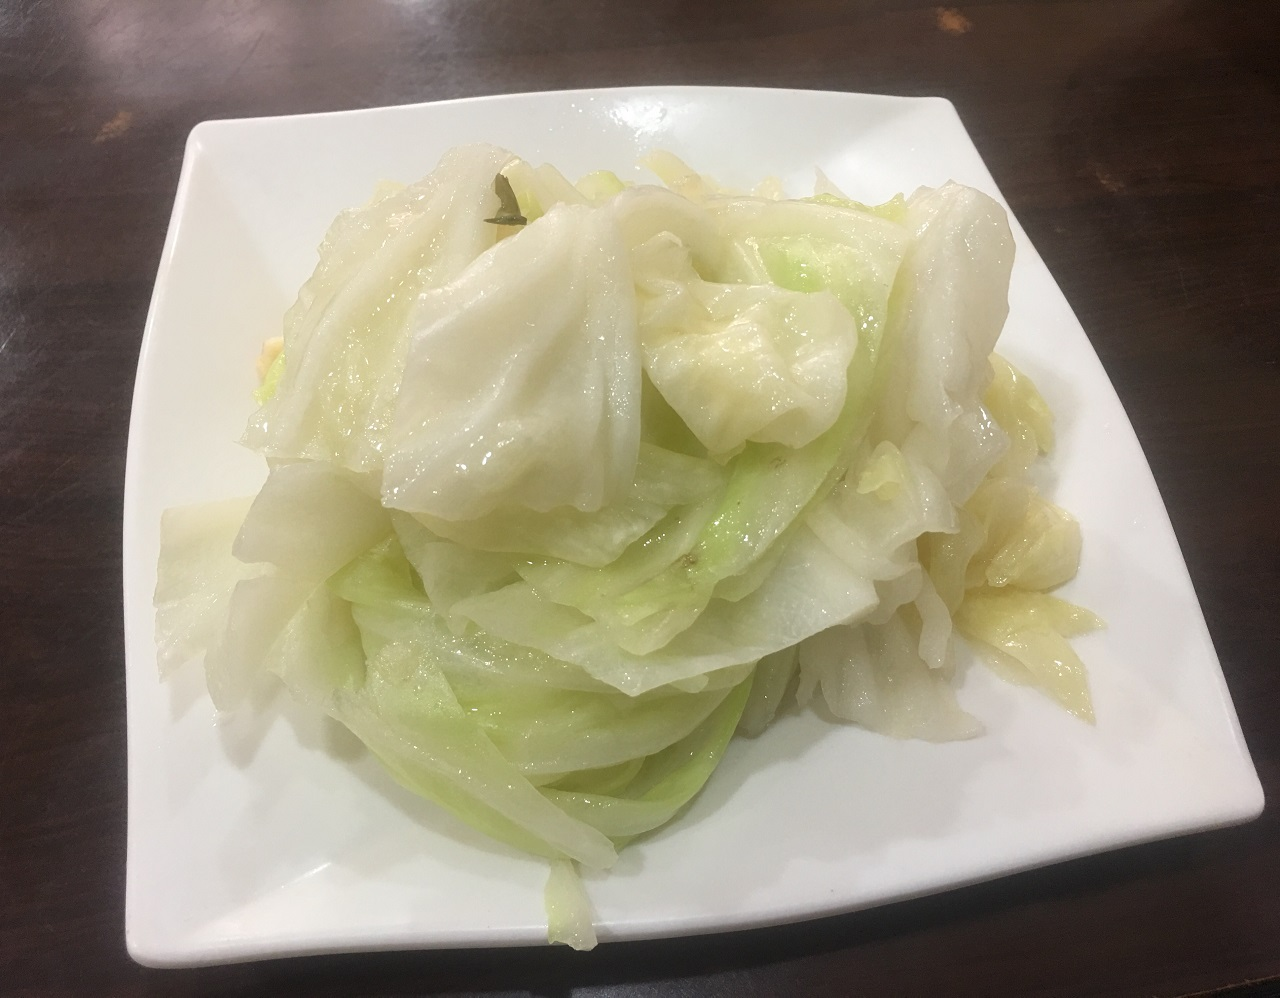 Boiled cabbage plate